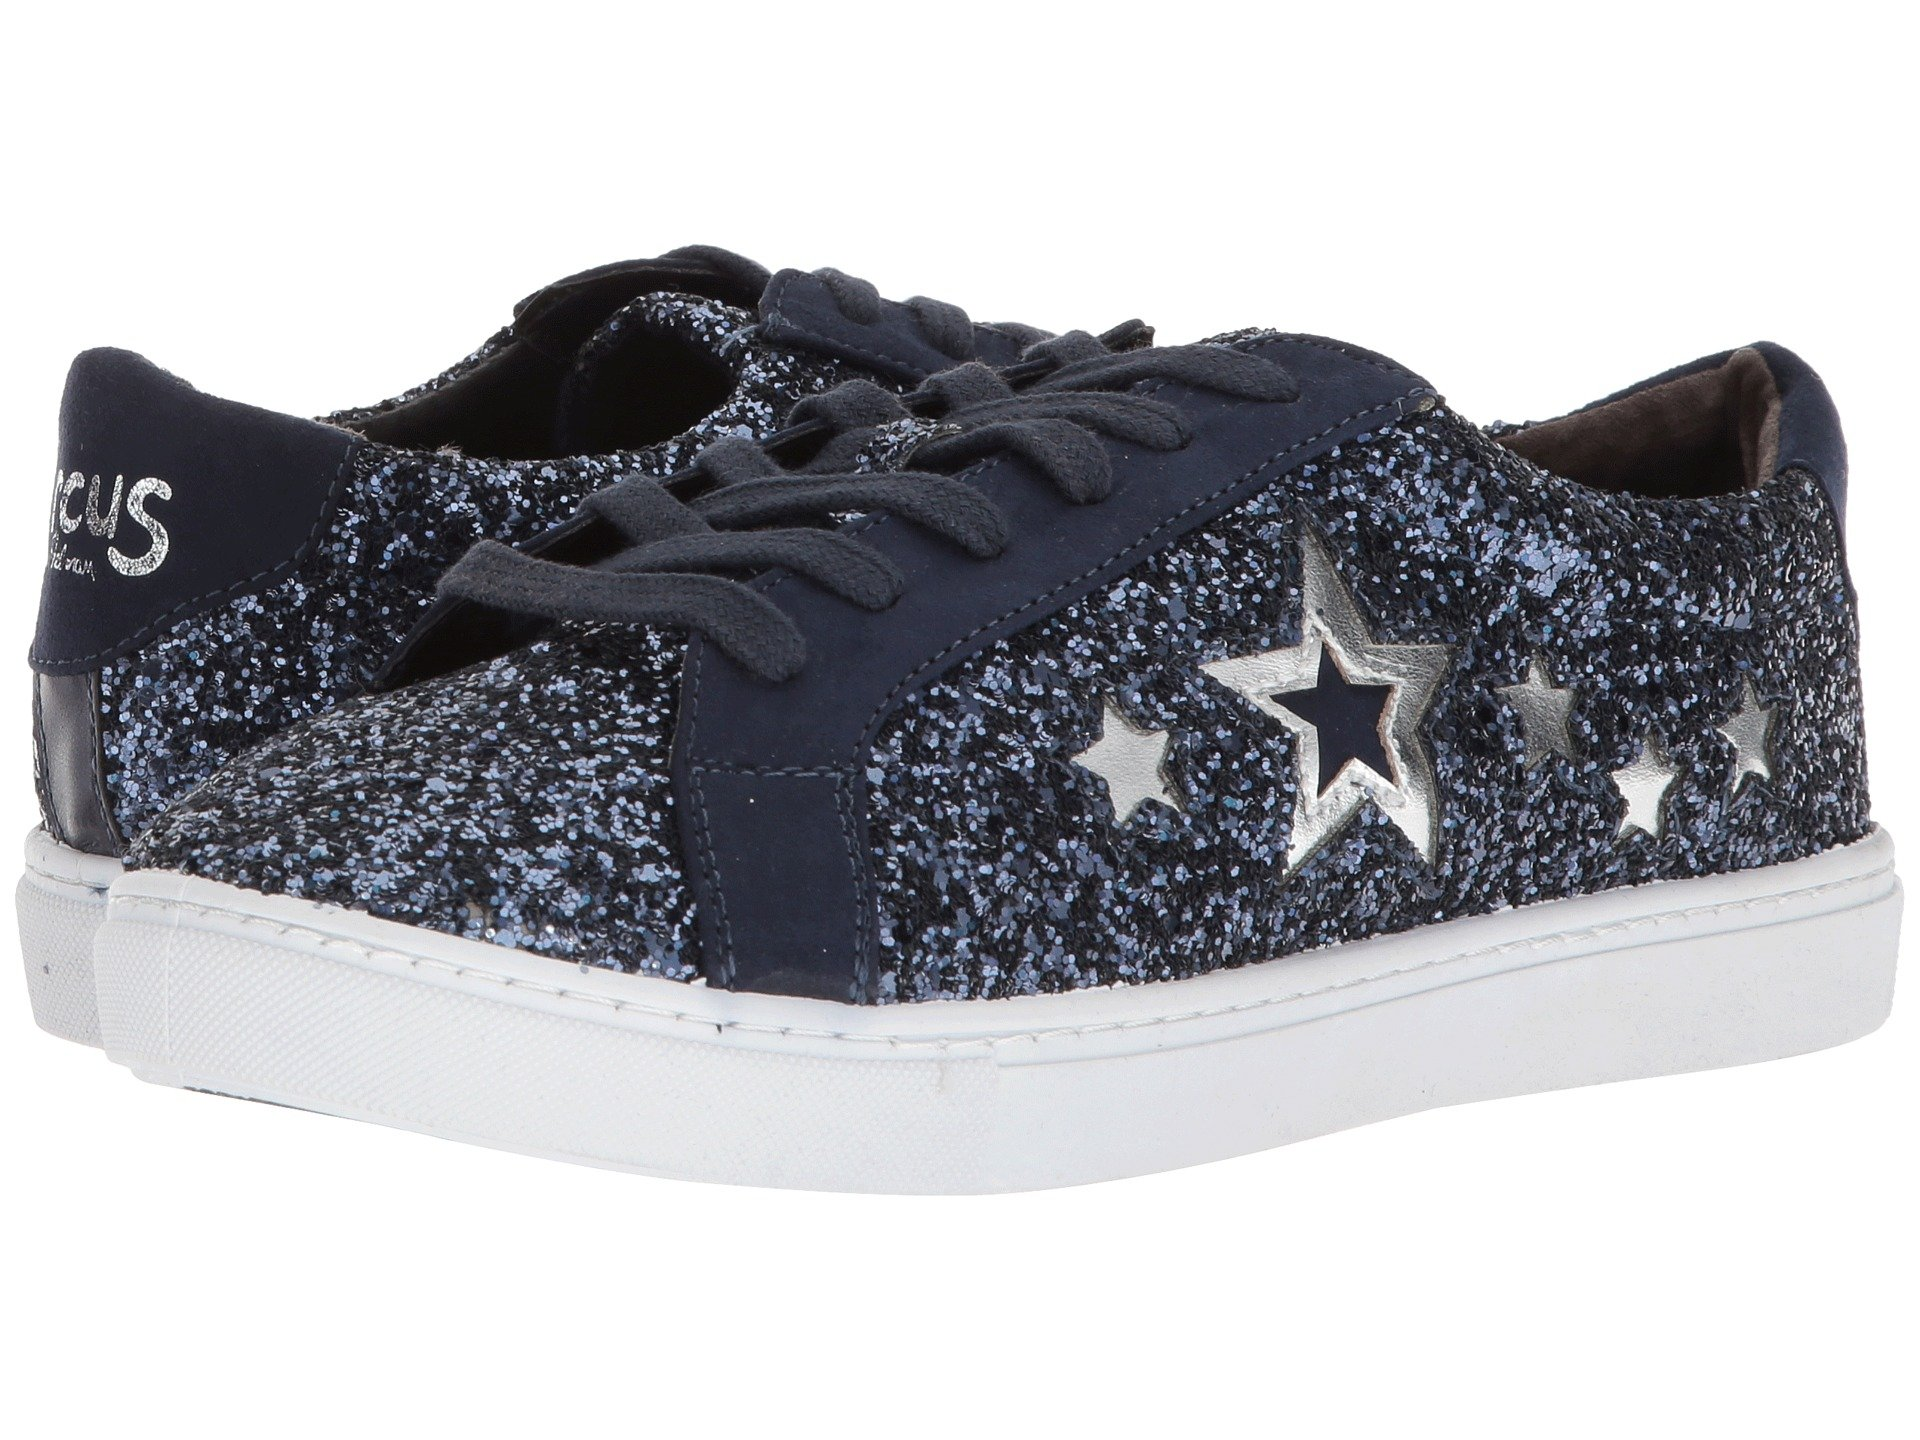 CIRCUS BY SAM EDELMAN Vanellope-1, Navy/Silver Glitter/Microsuede/New Metal Grain in Navy Silver